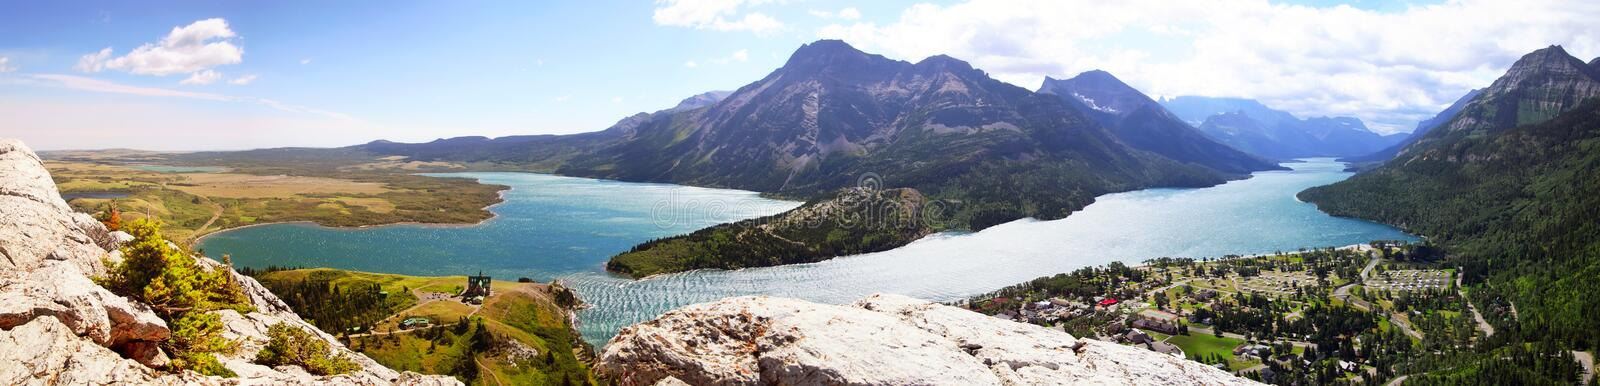 Waterton Lakes panorama. Waterton Lakes at evening, mountains in background. Panoramic composition of 5 images royalty free stock photos